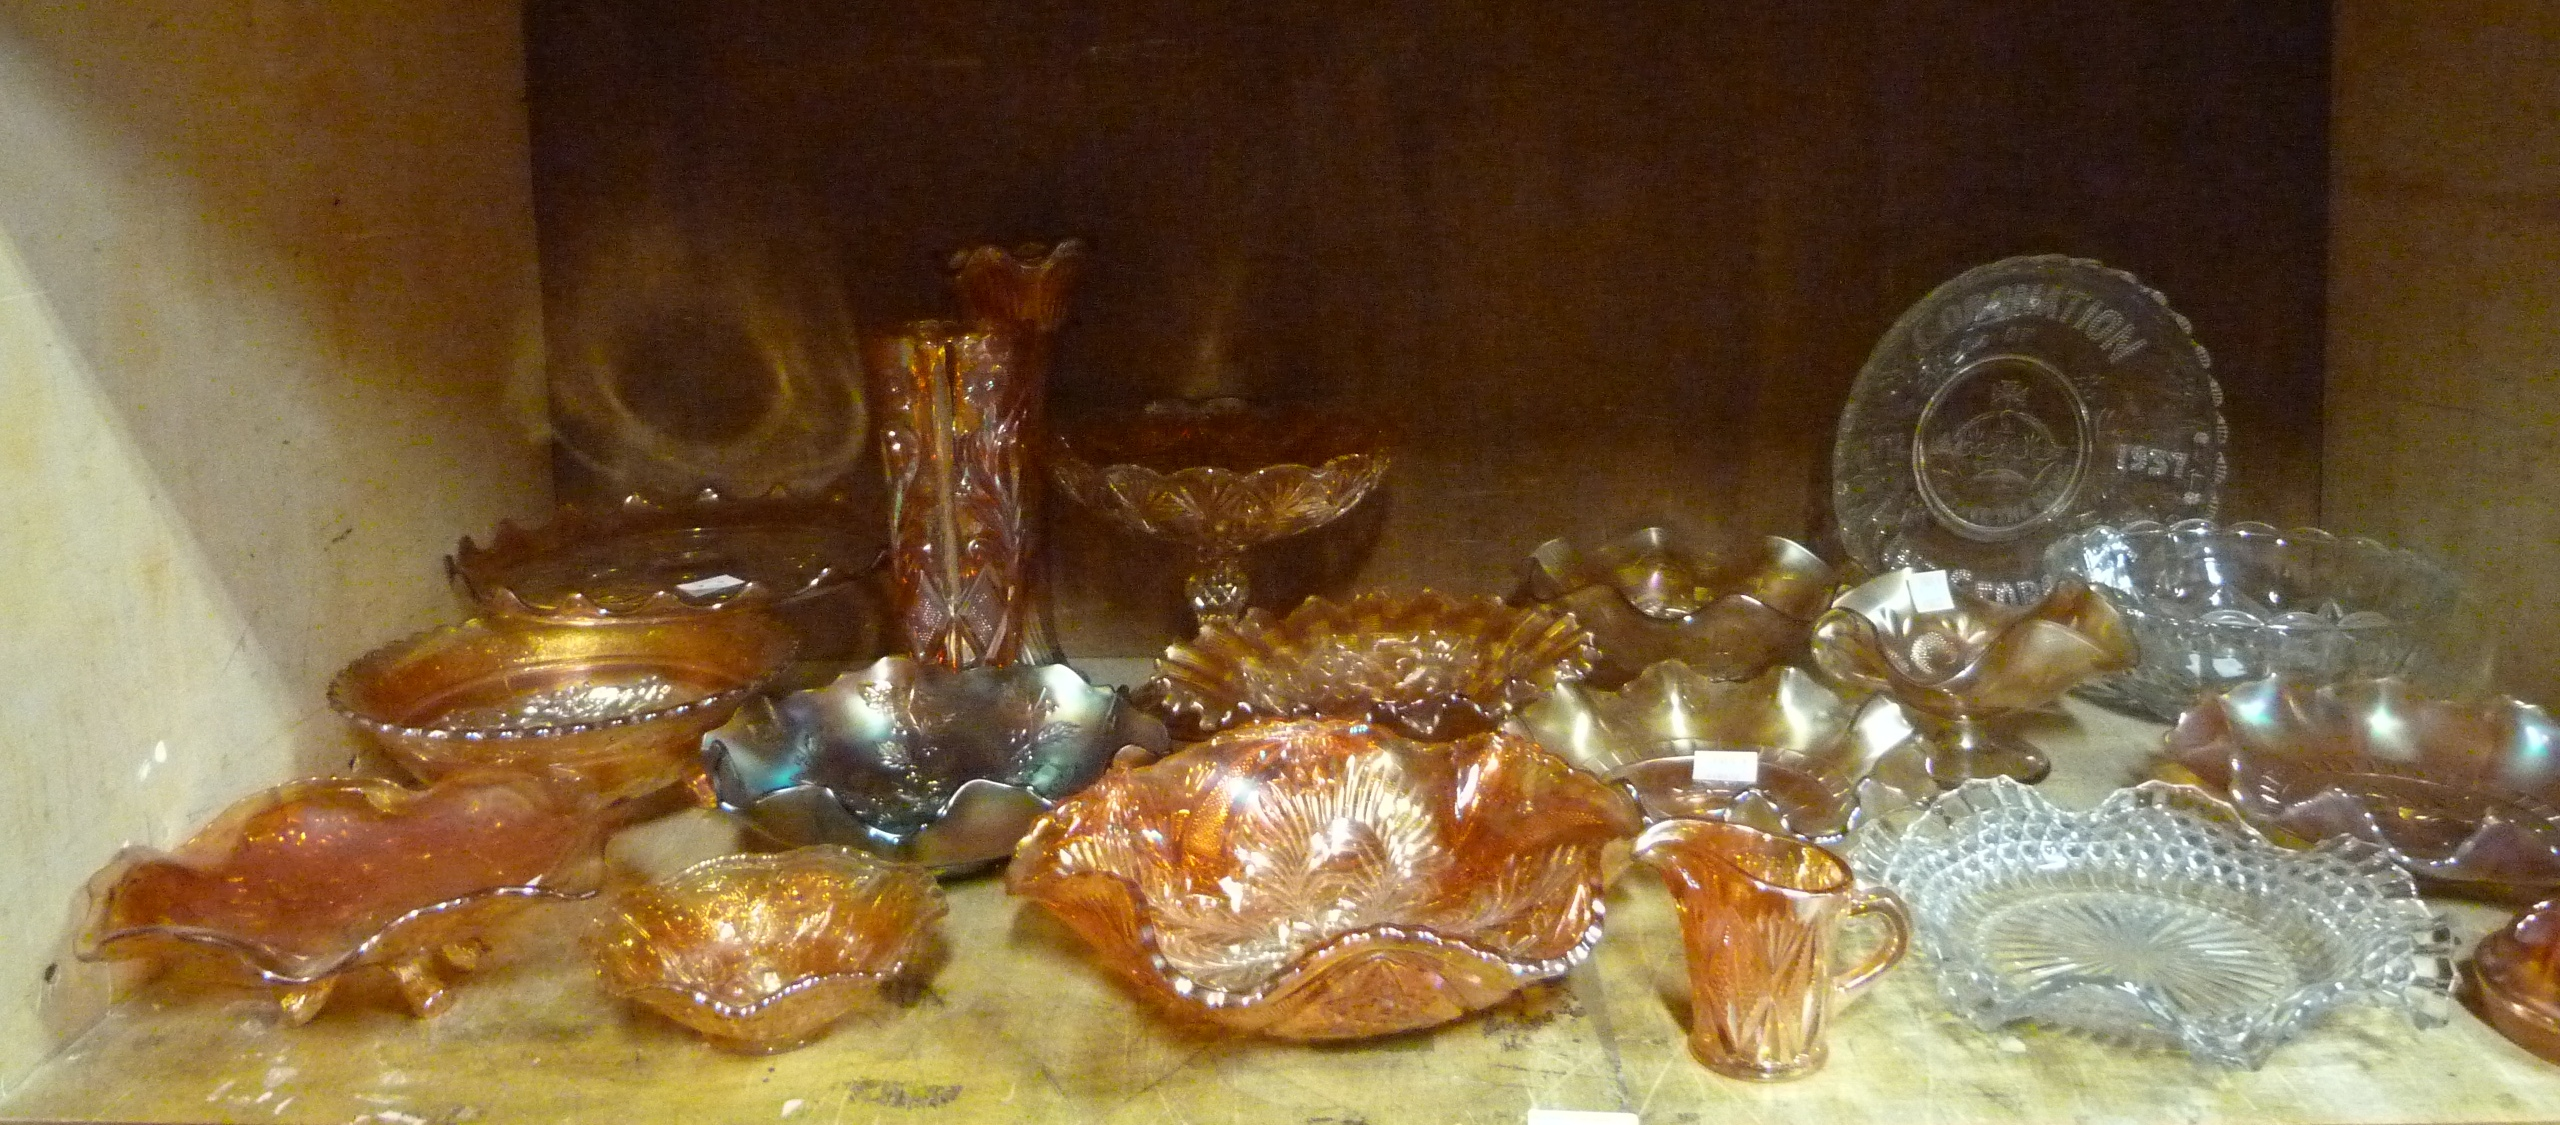 Lot 82 - A large quantity of carnival and pressed glass including coronation plate and mainly orange carnival